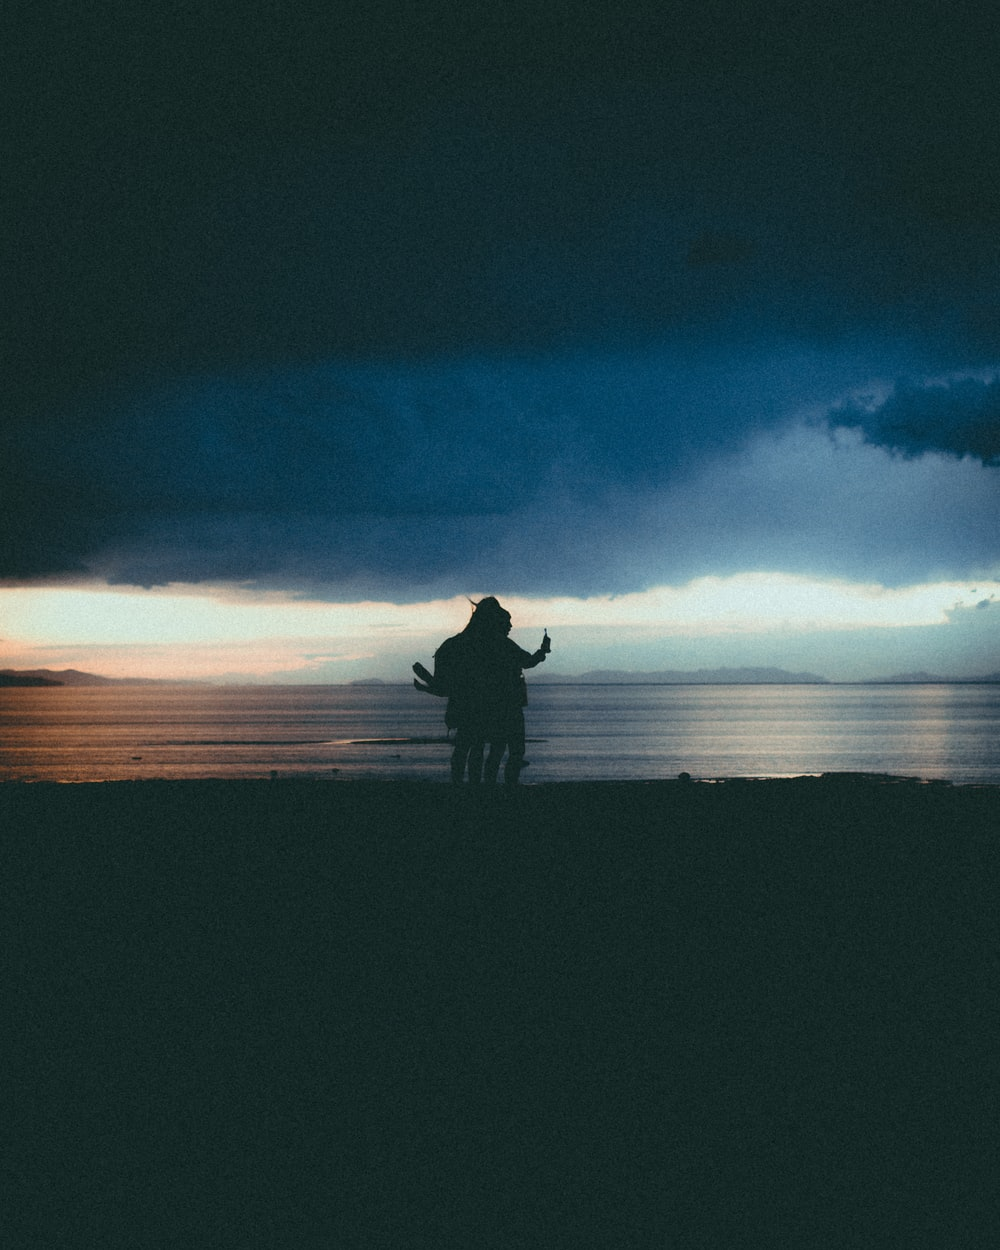 silhouette of man and woman standing on field during night time